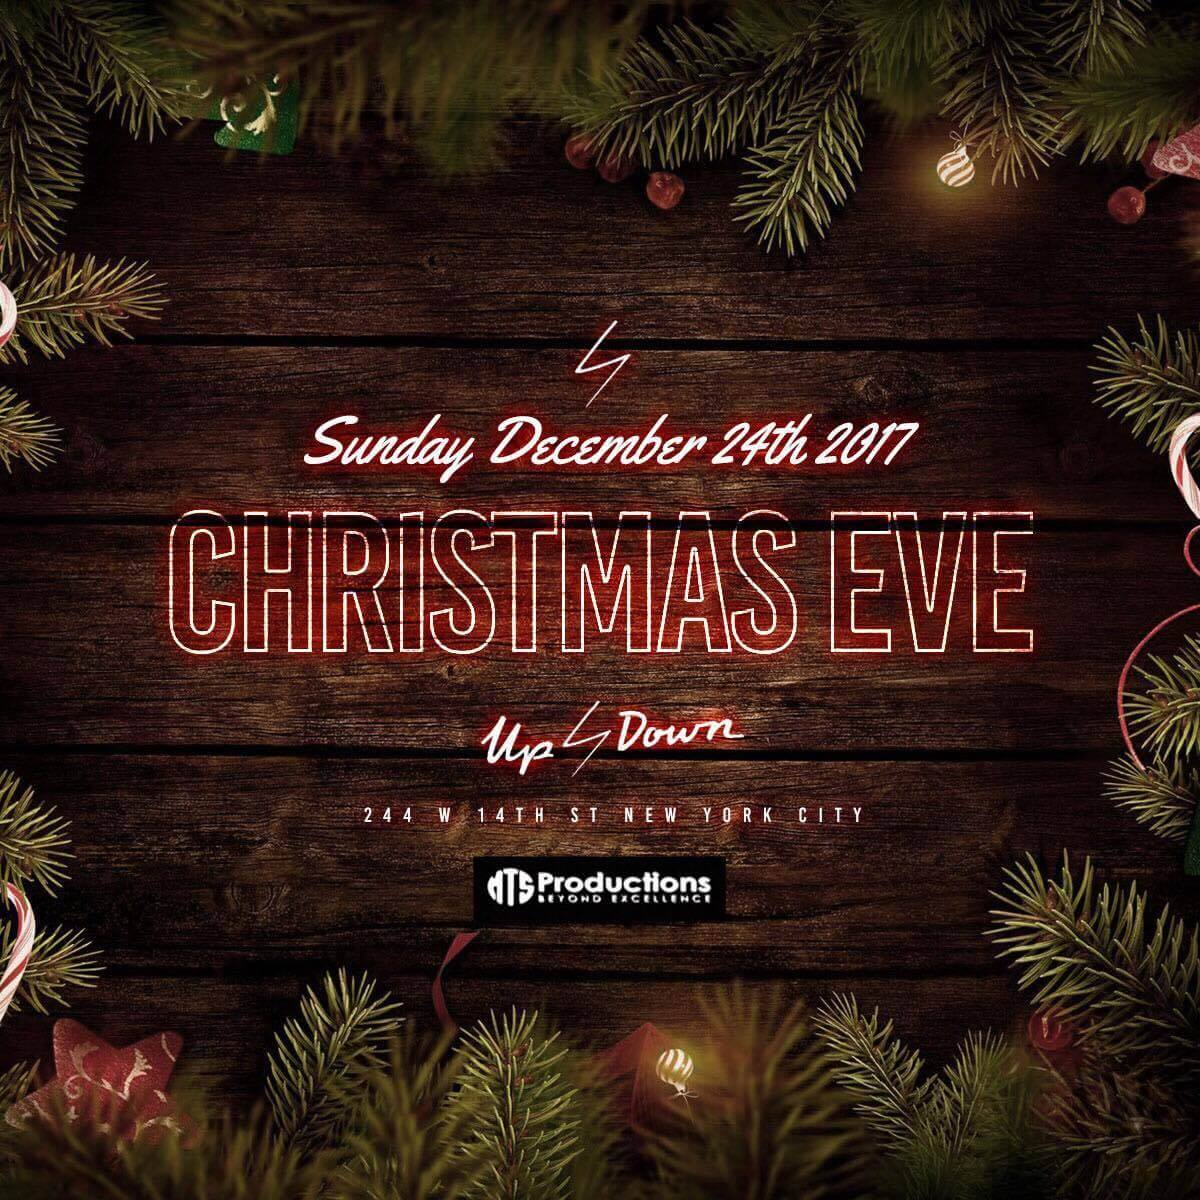 Christmas Eve at up & down